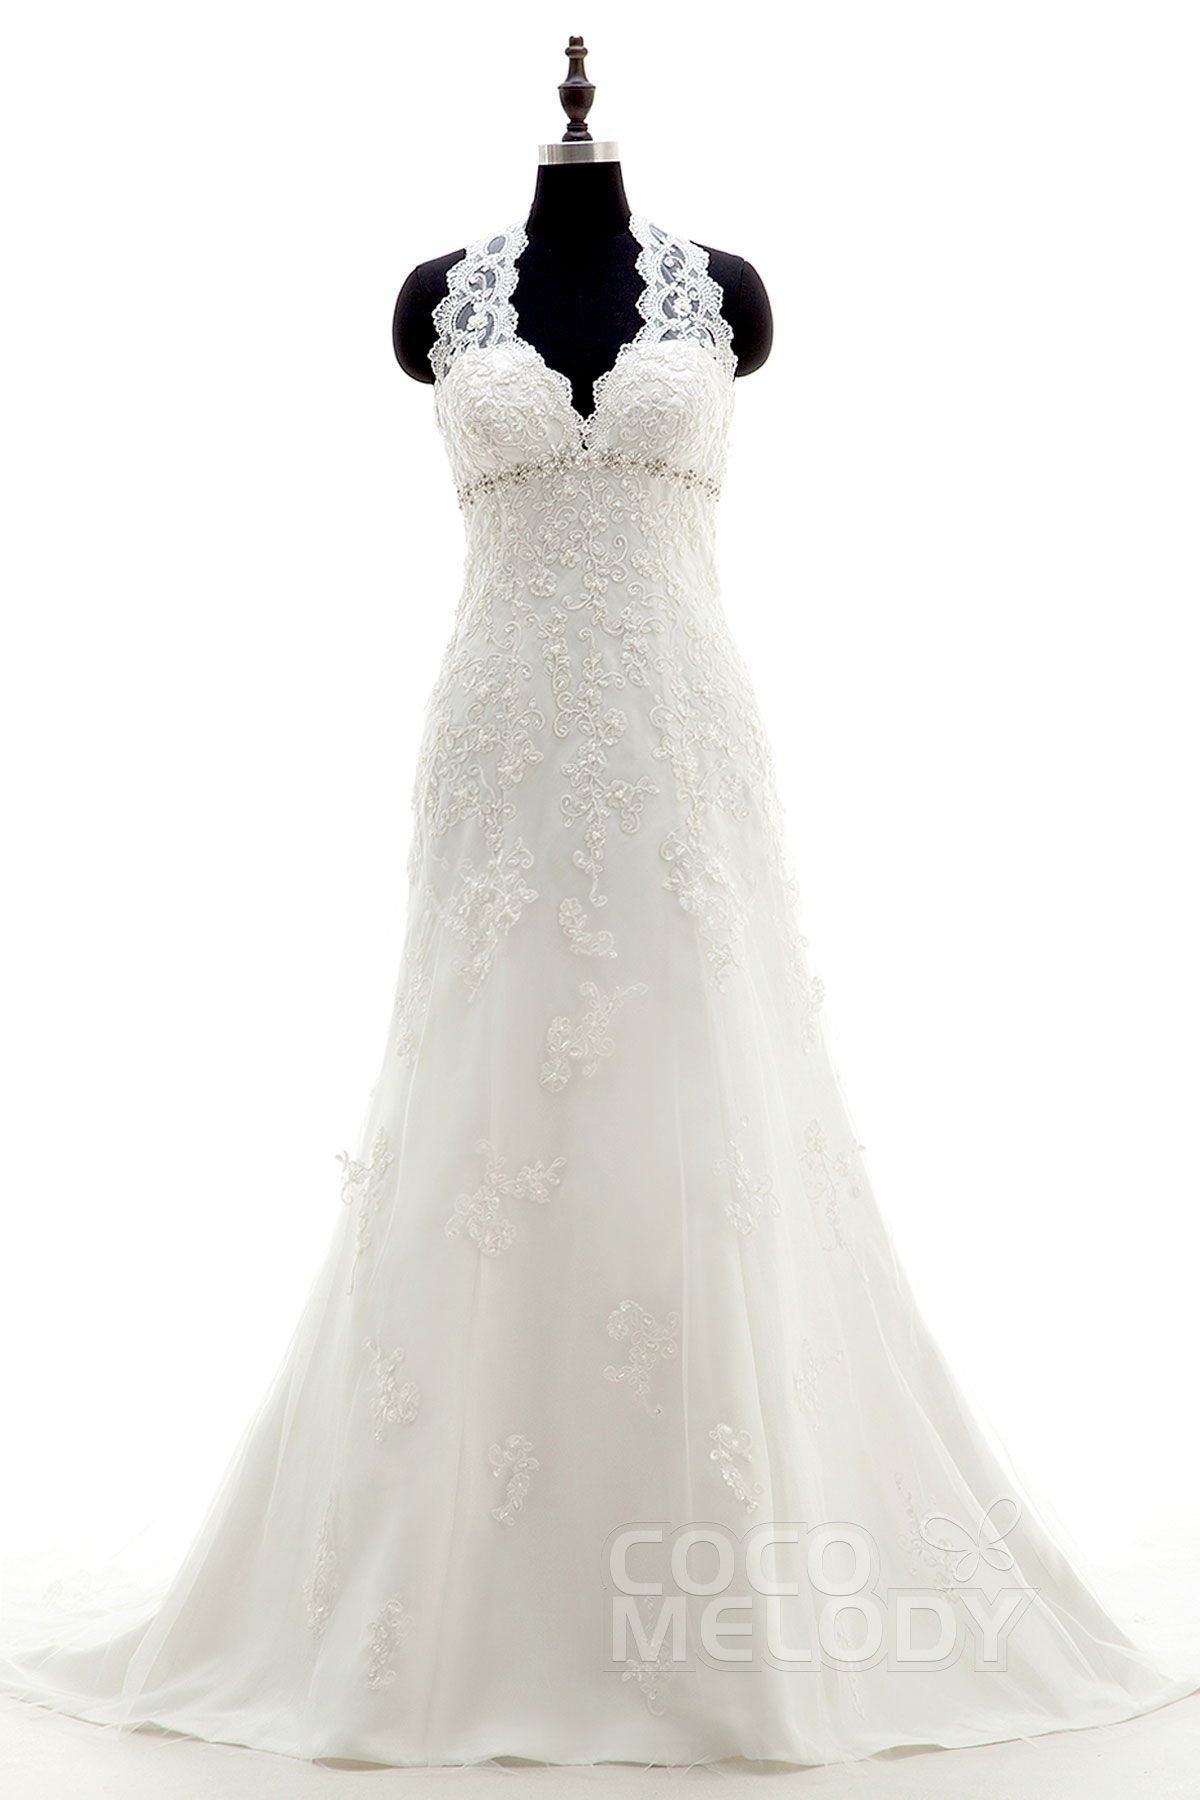 Modern vintage wedding dresses  Perfect SheathColumn Halter Natural Court Train Tulle and Lace